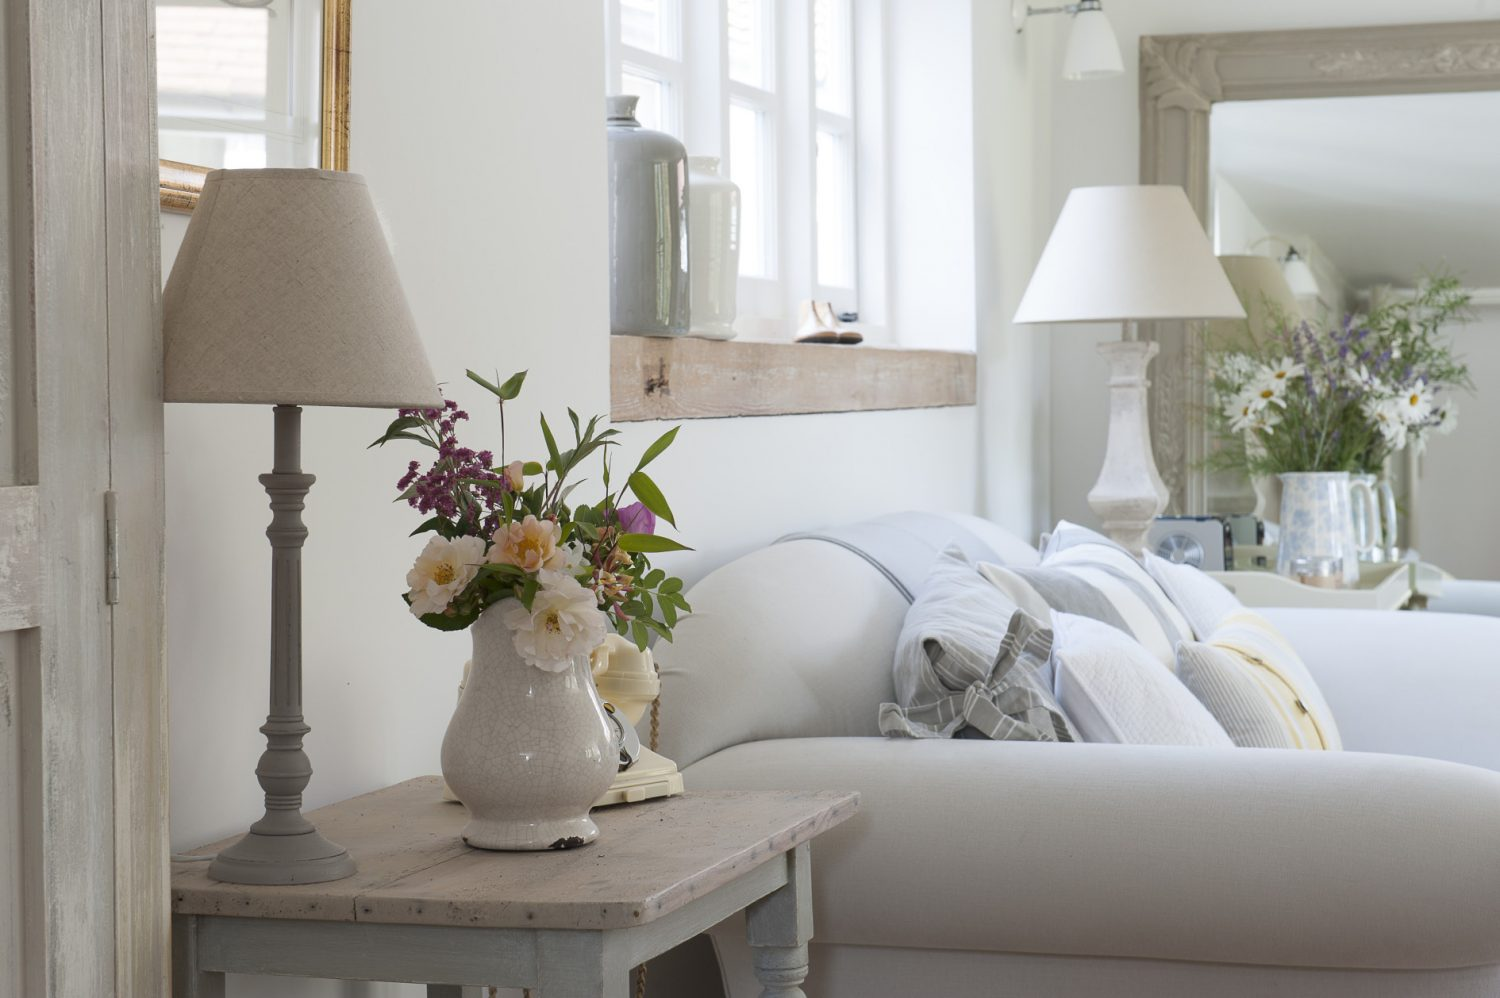 The bright and airy sitting room is completed with shades of greys, creams and yellows provided by the soft furnishings. Farrow & Ball's 'All White', used throughout the house, cleverly provides subtle variations of shade depending on the quality of the light and the angle it strikes wall or ceiling